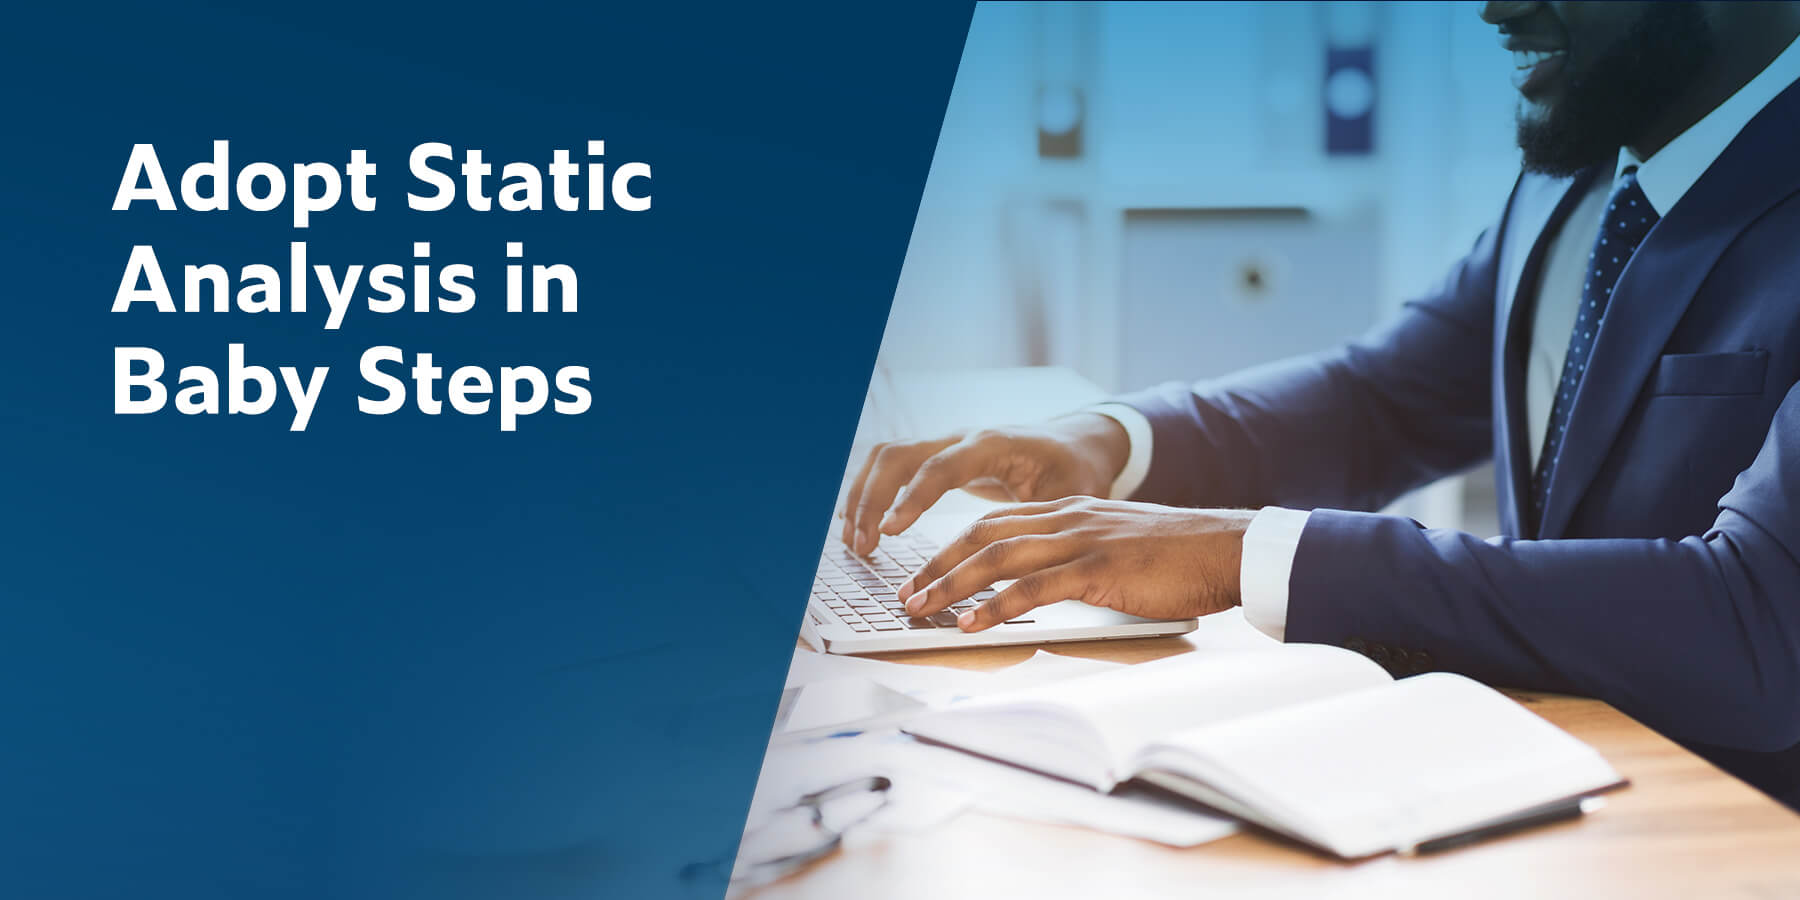 Adopt Static Analysis in Baby Steps